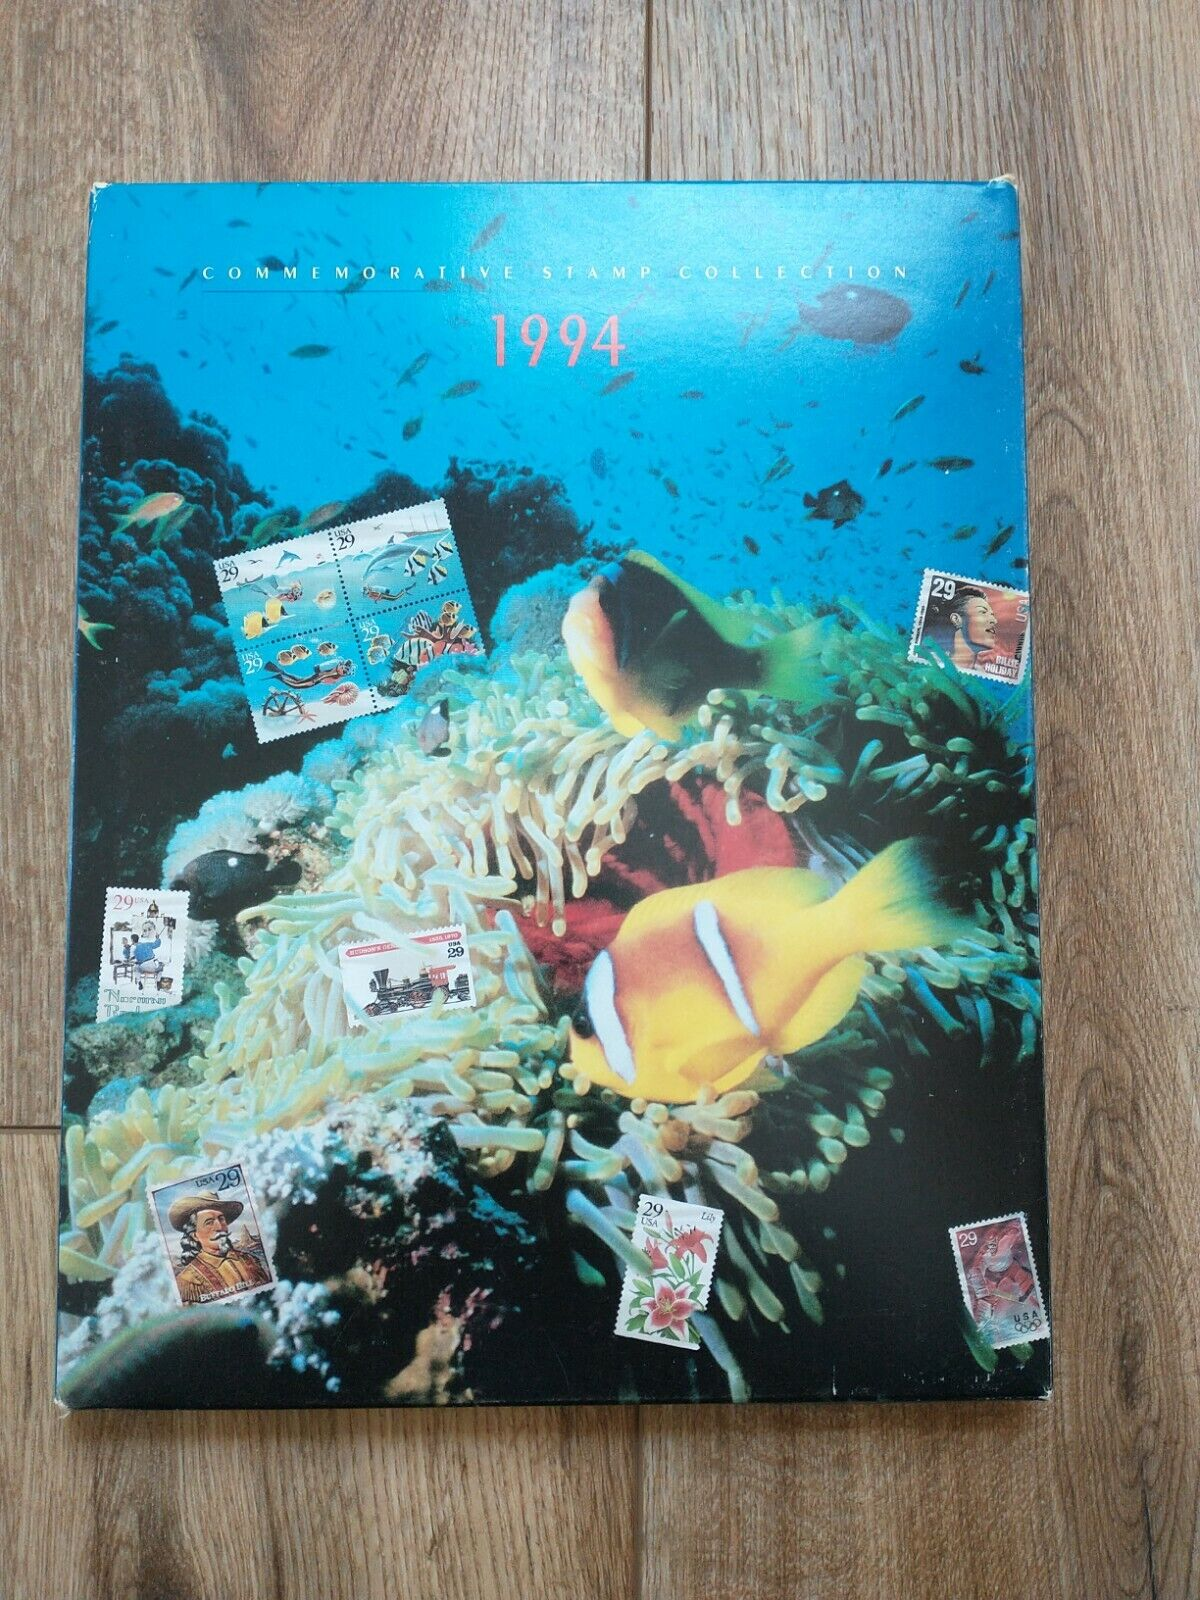 1994 US Commemorative Stamp Collection, Album, Sealed Mint Stamps Mounts - $35.00